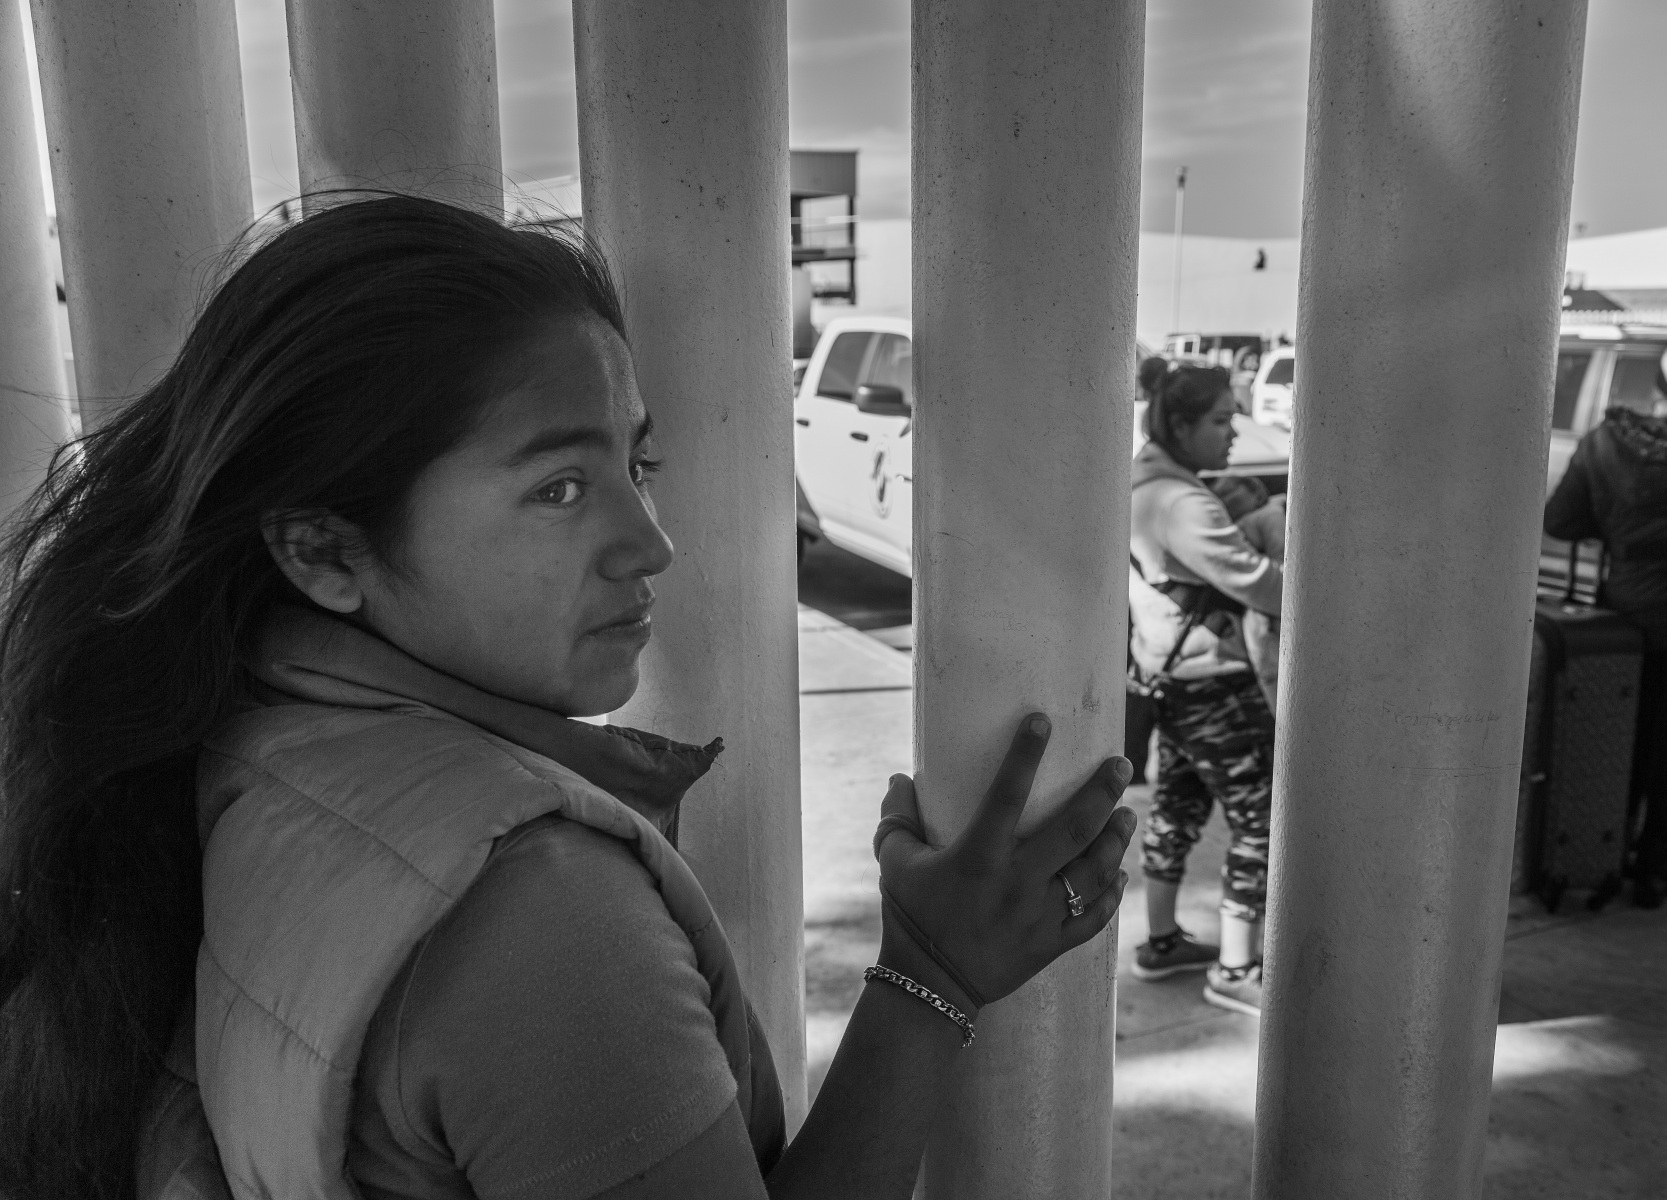 On the first day of the new Migrant Protection Protocols instituted by Homeland Security, on Jan. 25, 2019, Nya, foreground, who is from El Salvador, says goodbye to  Maria (background), who is also from El Salvador, as she gets into a van with her child, headed to San Diego for processing for possible entry into the United States. However, Maria may soon have to return to Mexico due a more stringent policy for obtaining asylum in the United States.